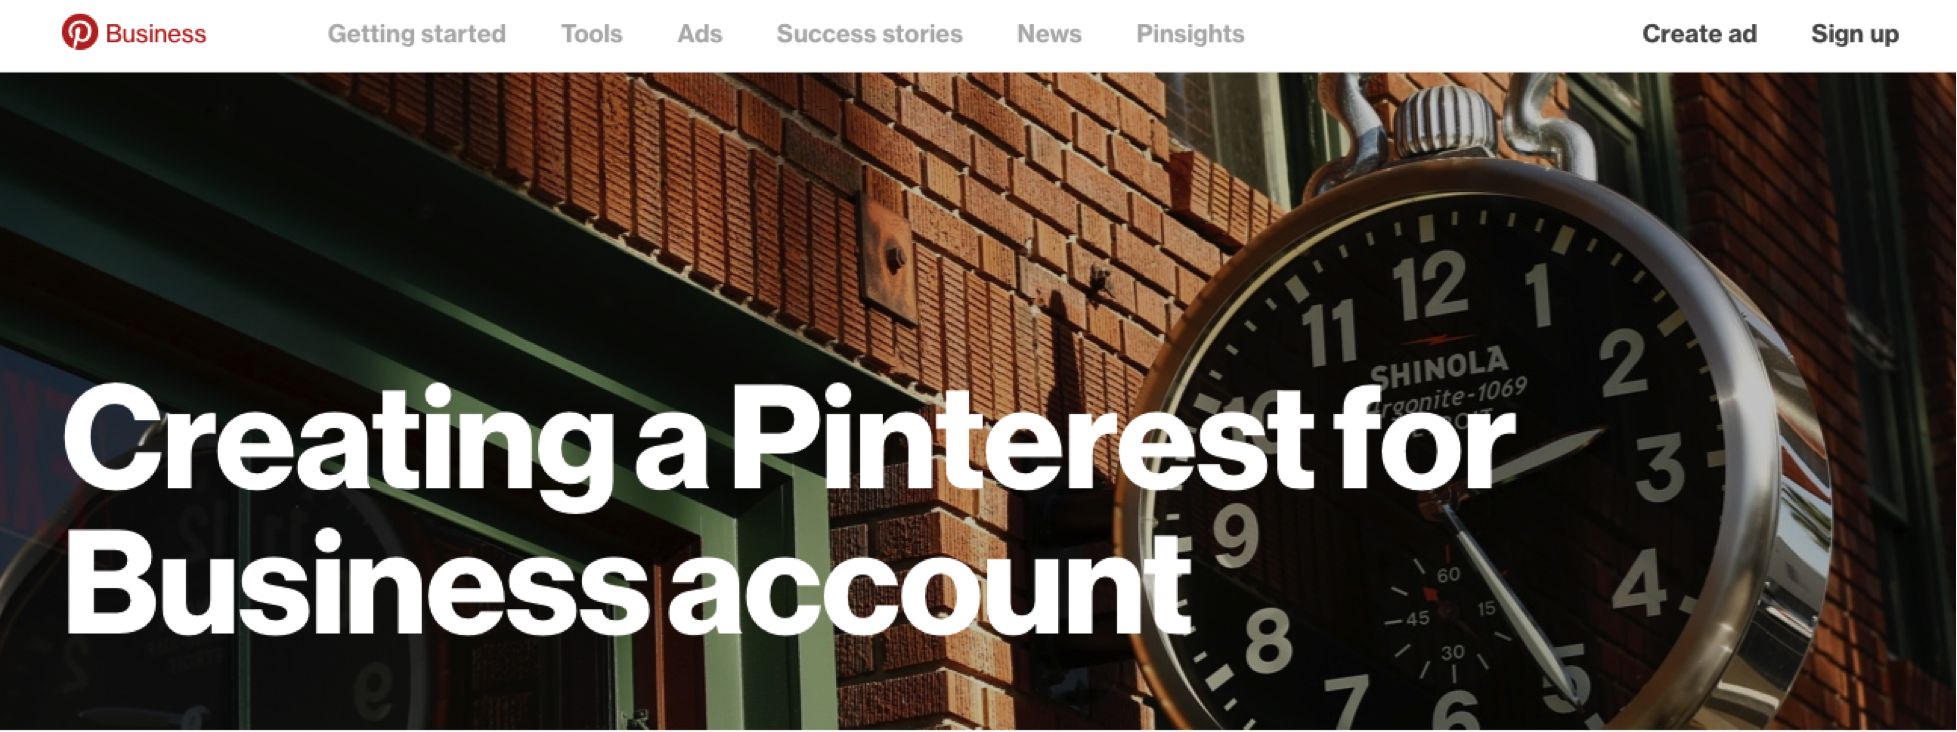 Pinterest for Business: Step-By-Step Guide to Getting